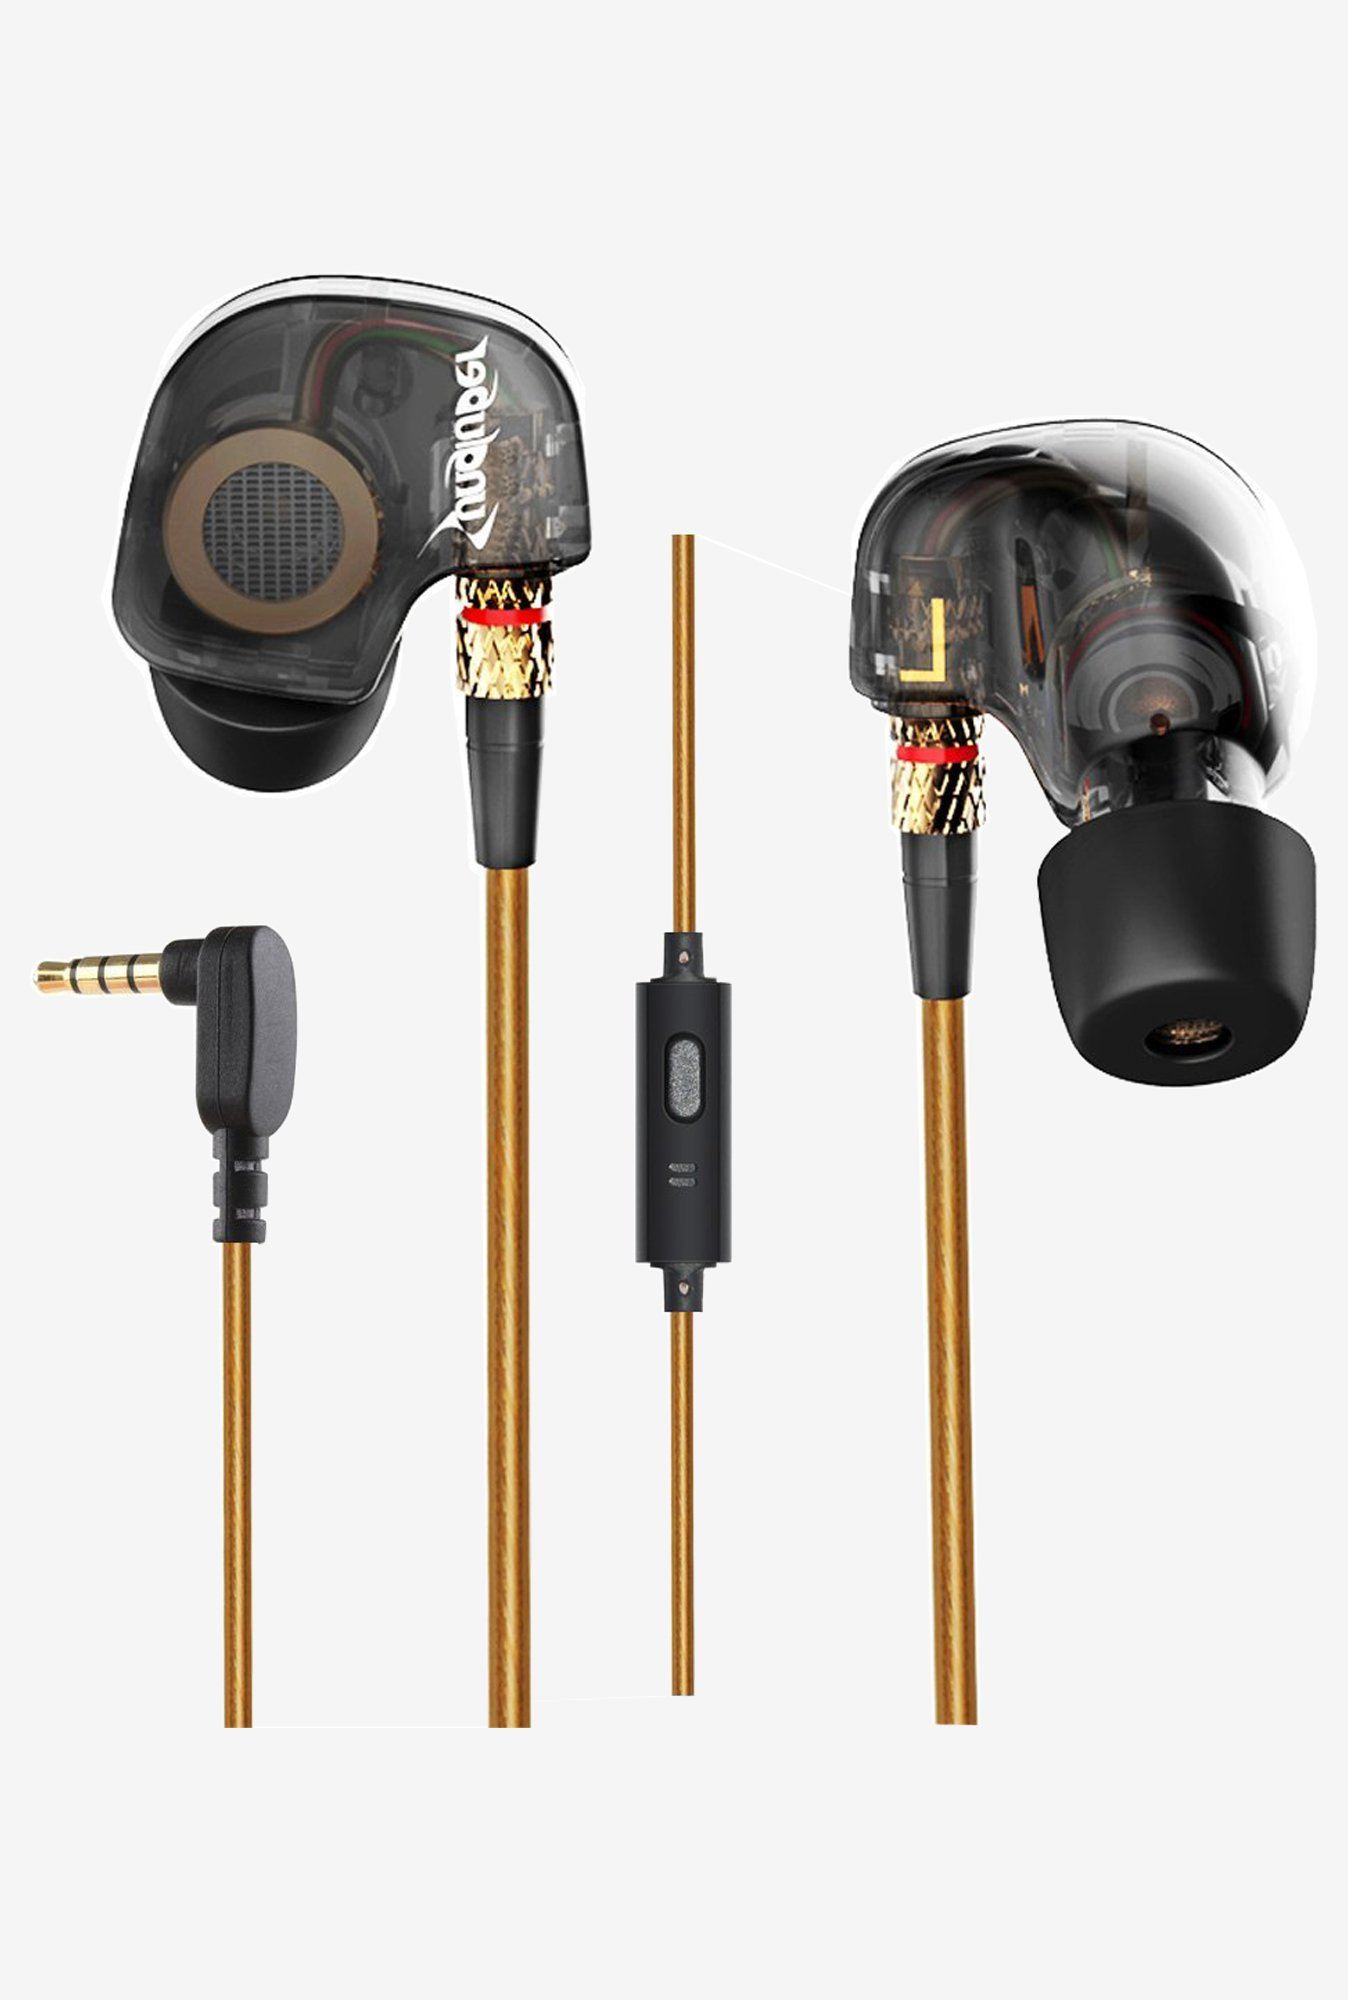 Sungluber 4473118 Audiophile HiFi Earbuds In the Ear (Black)